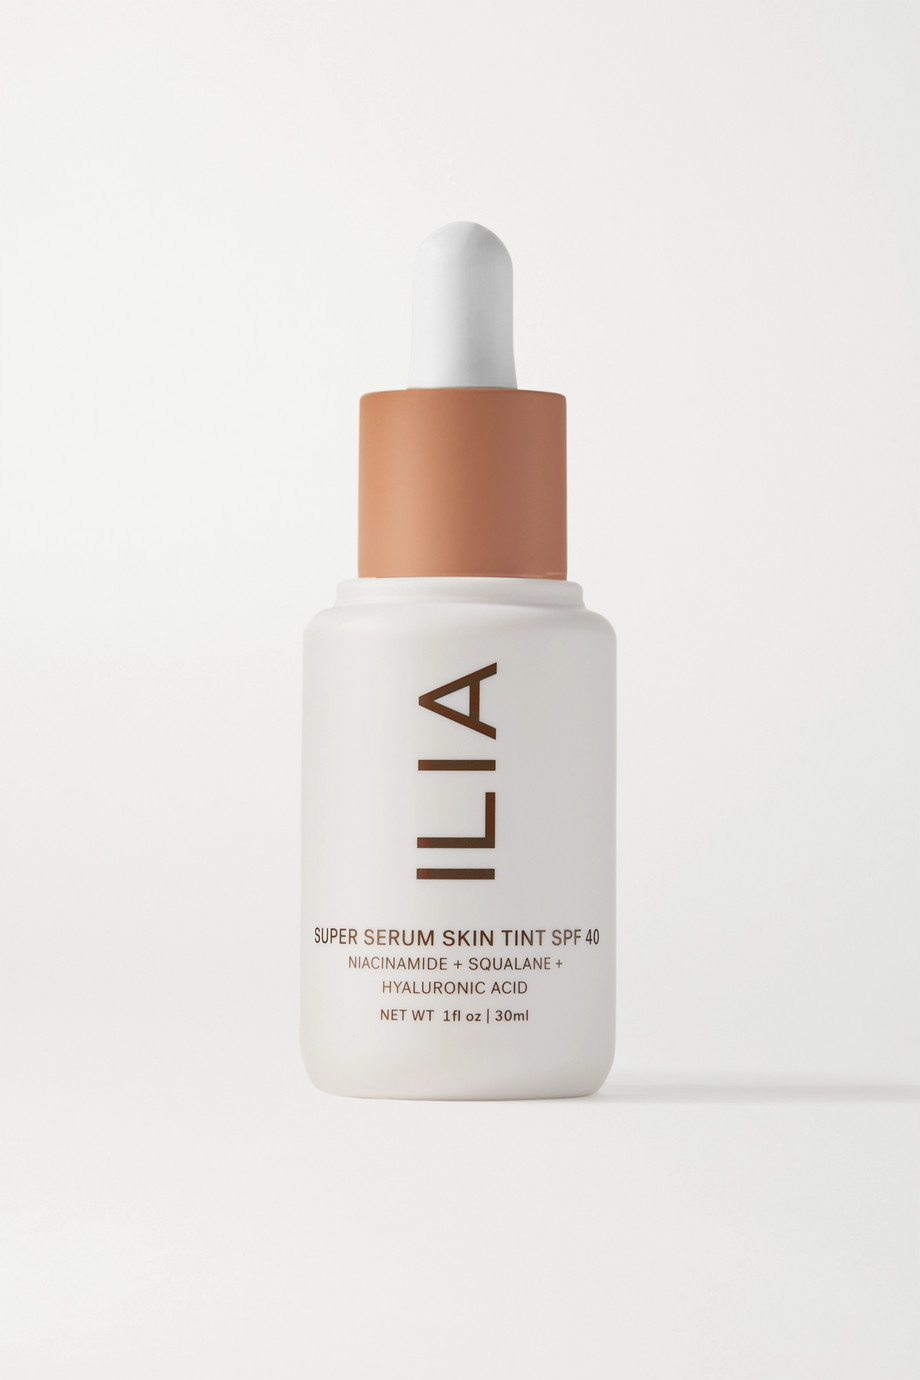 Ilia Super Serum Skin Tint SPF 40 - Ora ST6, 30ml